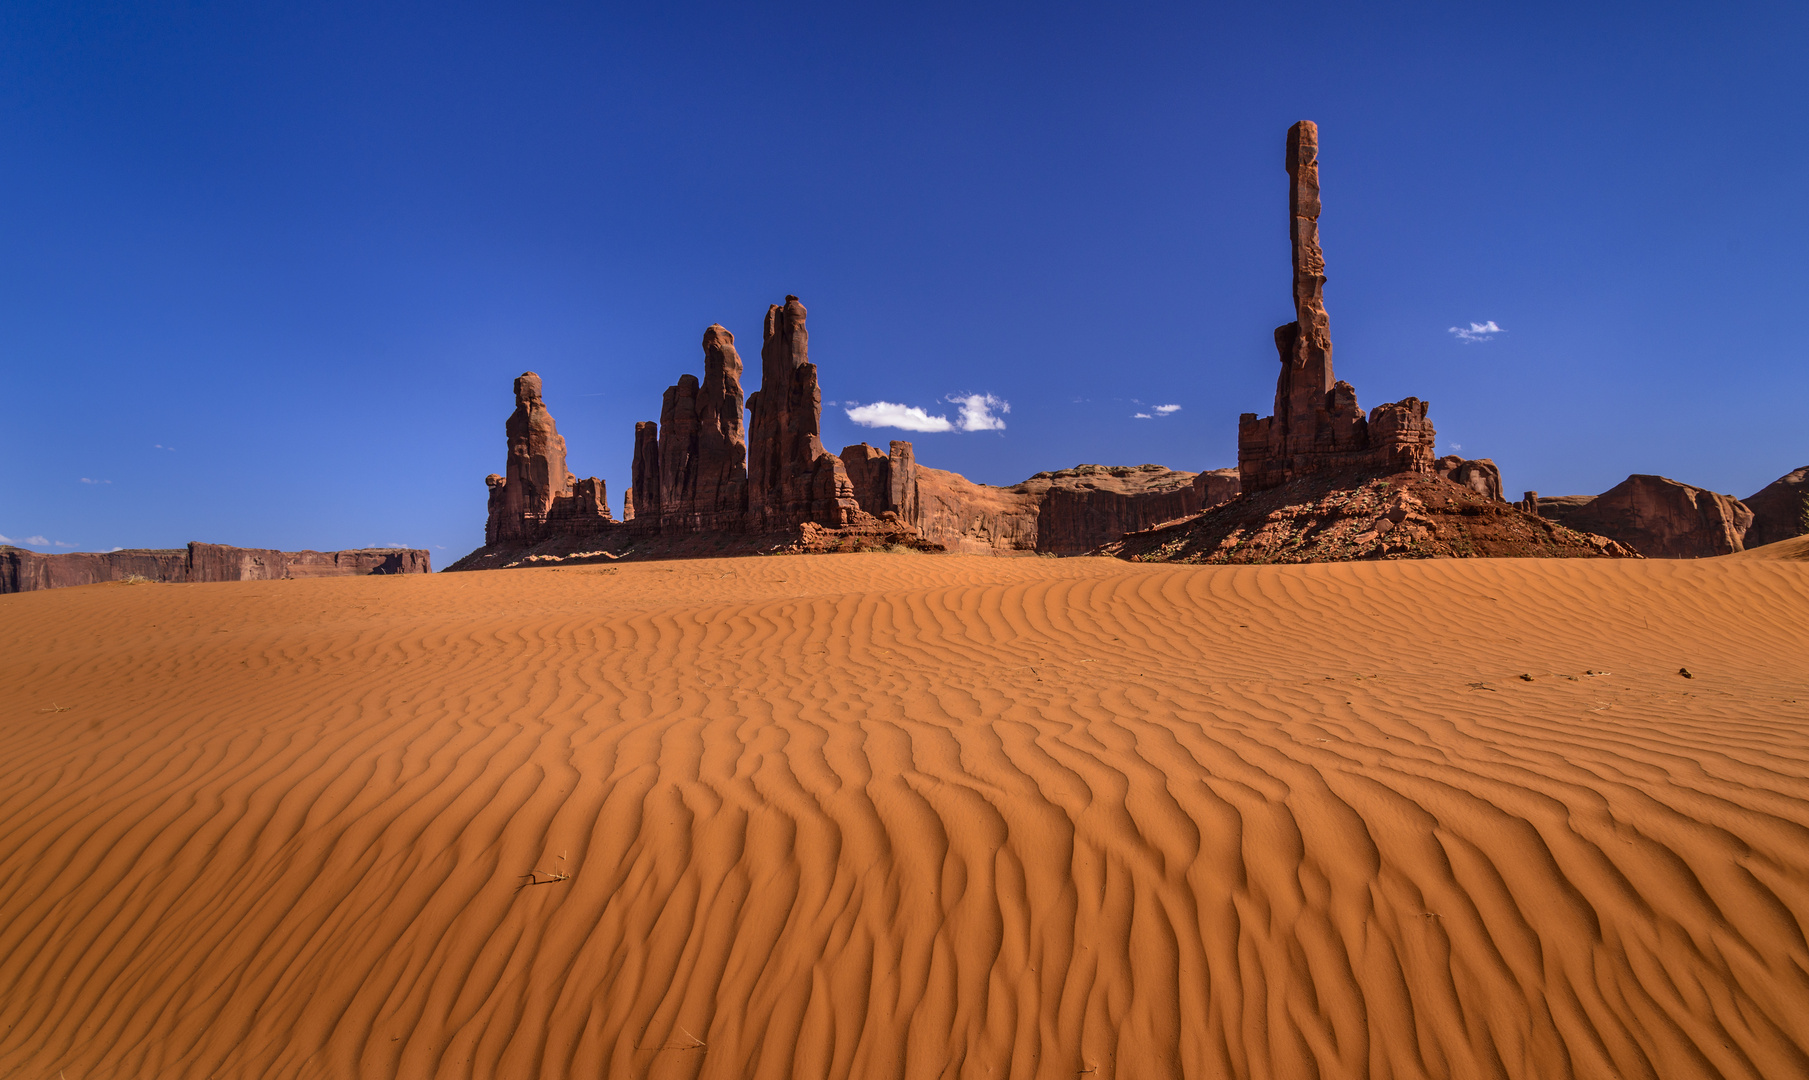 Yei Bi Chei und Totem Pole, Monument Valley, Arizona, USA